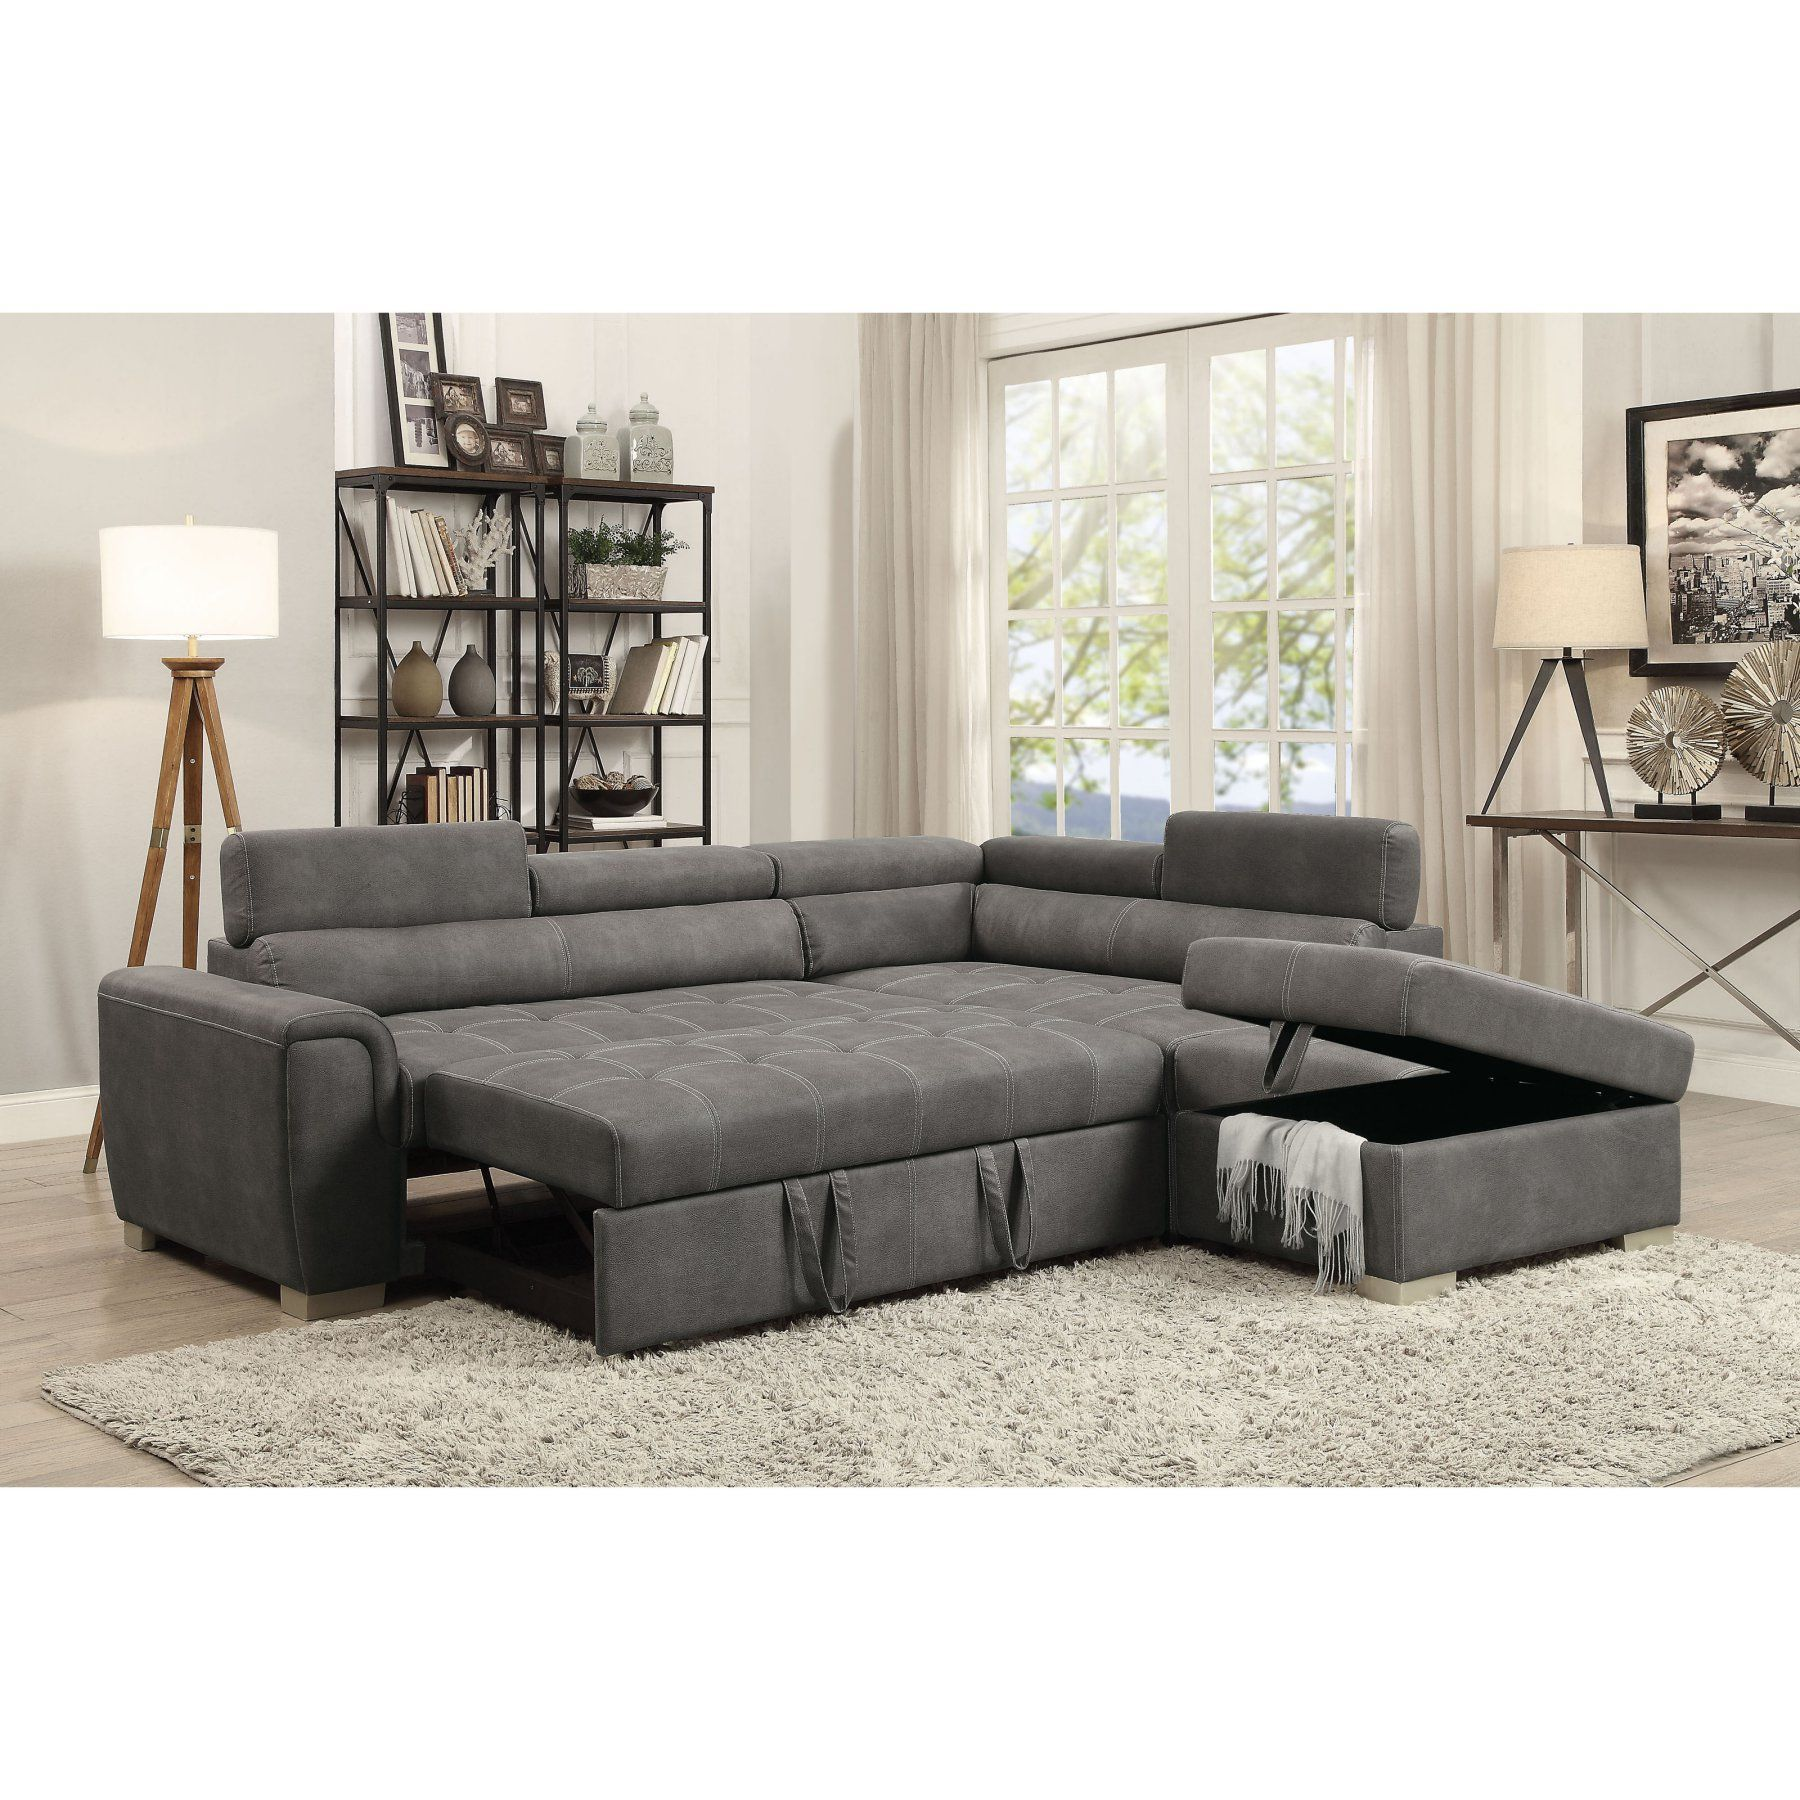 Acme Furniture Thelma Sectional Sofa With Sleeper And